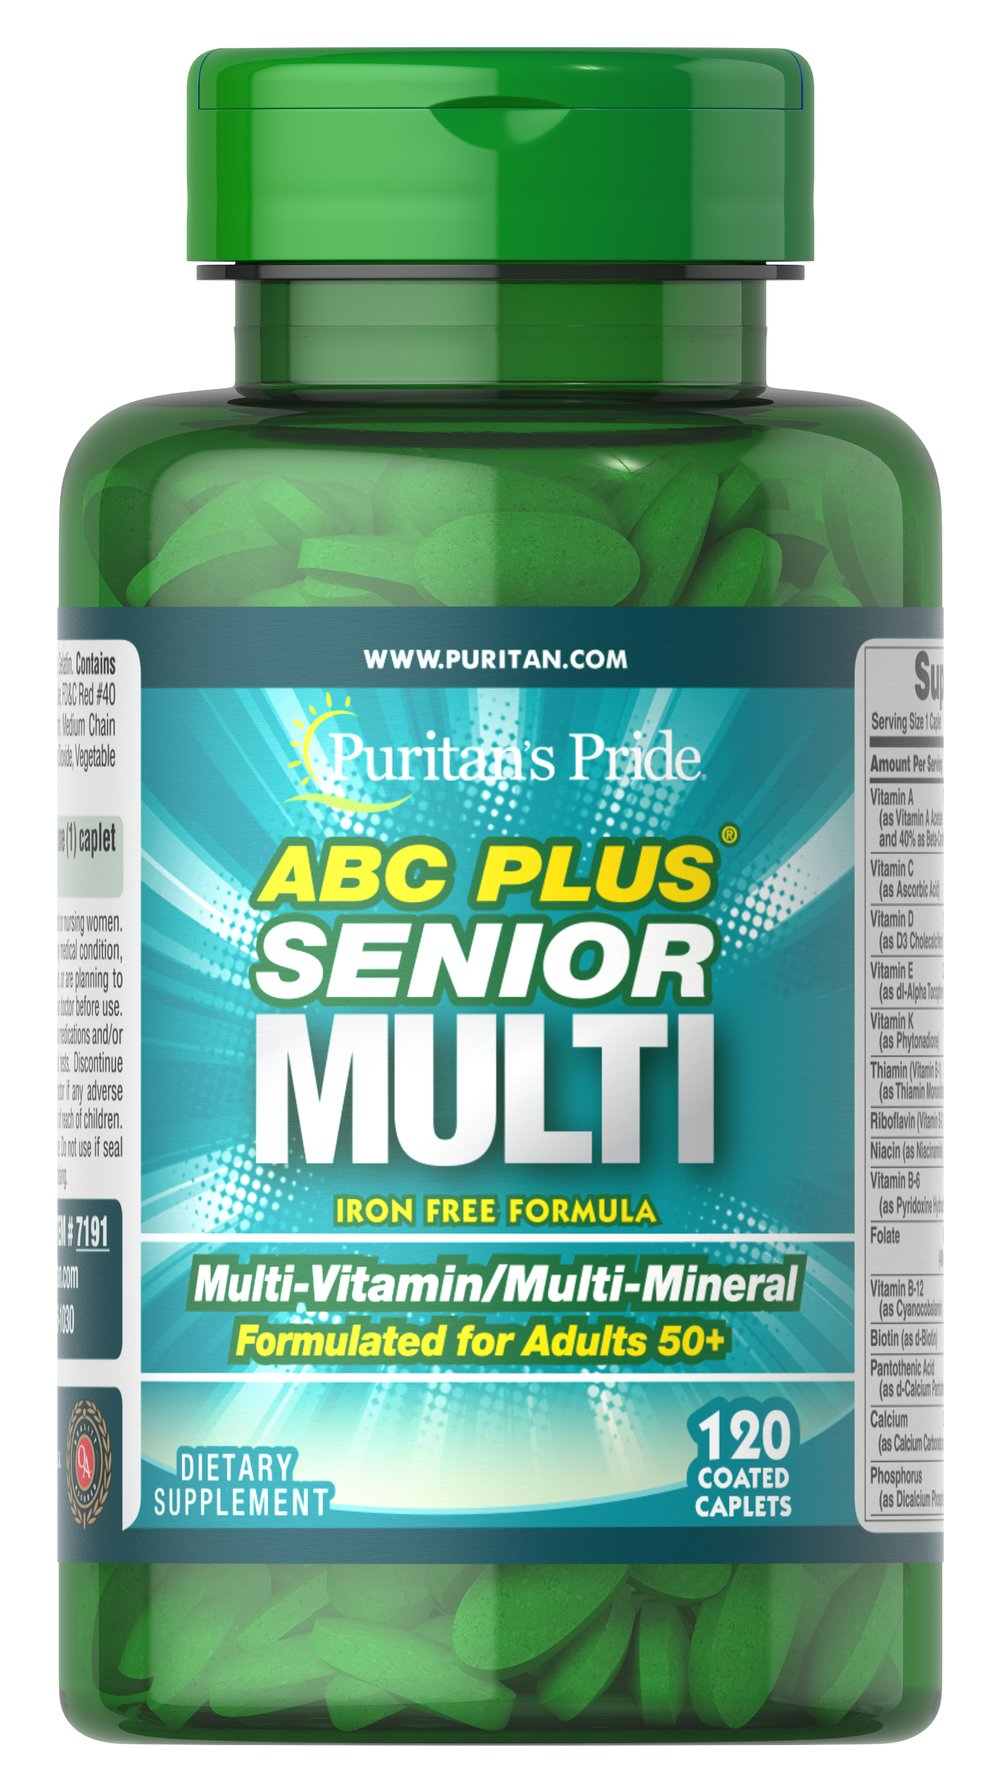 ABC Plus® Senior Multivitamin Multi-Mineral Formula Thumbnail Alternate Bottle View